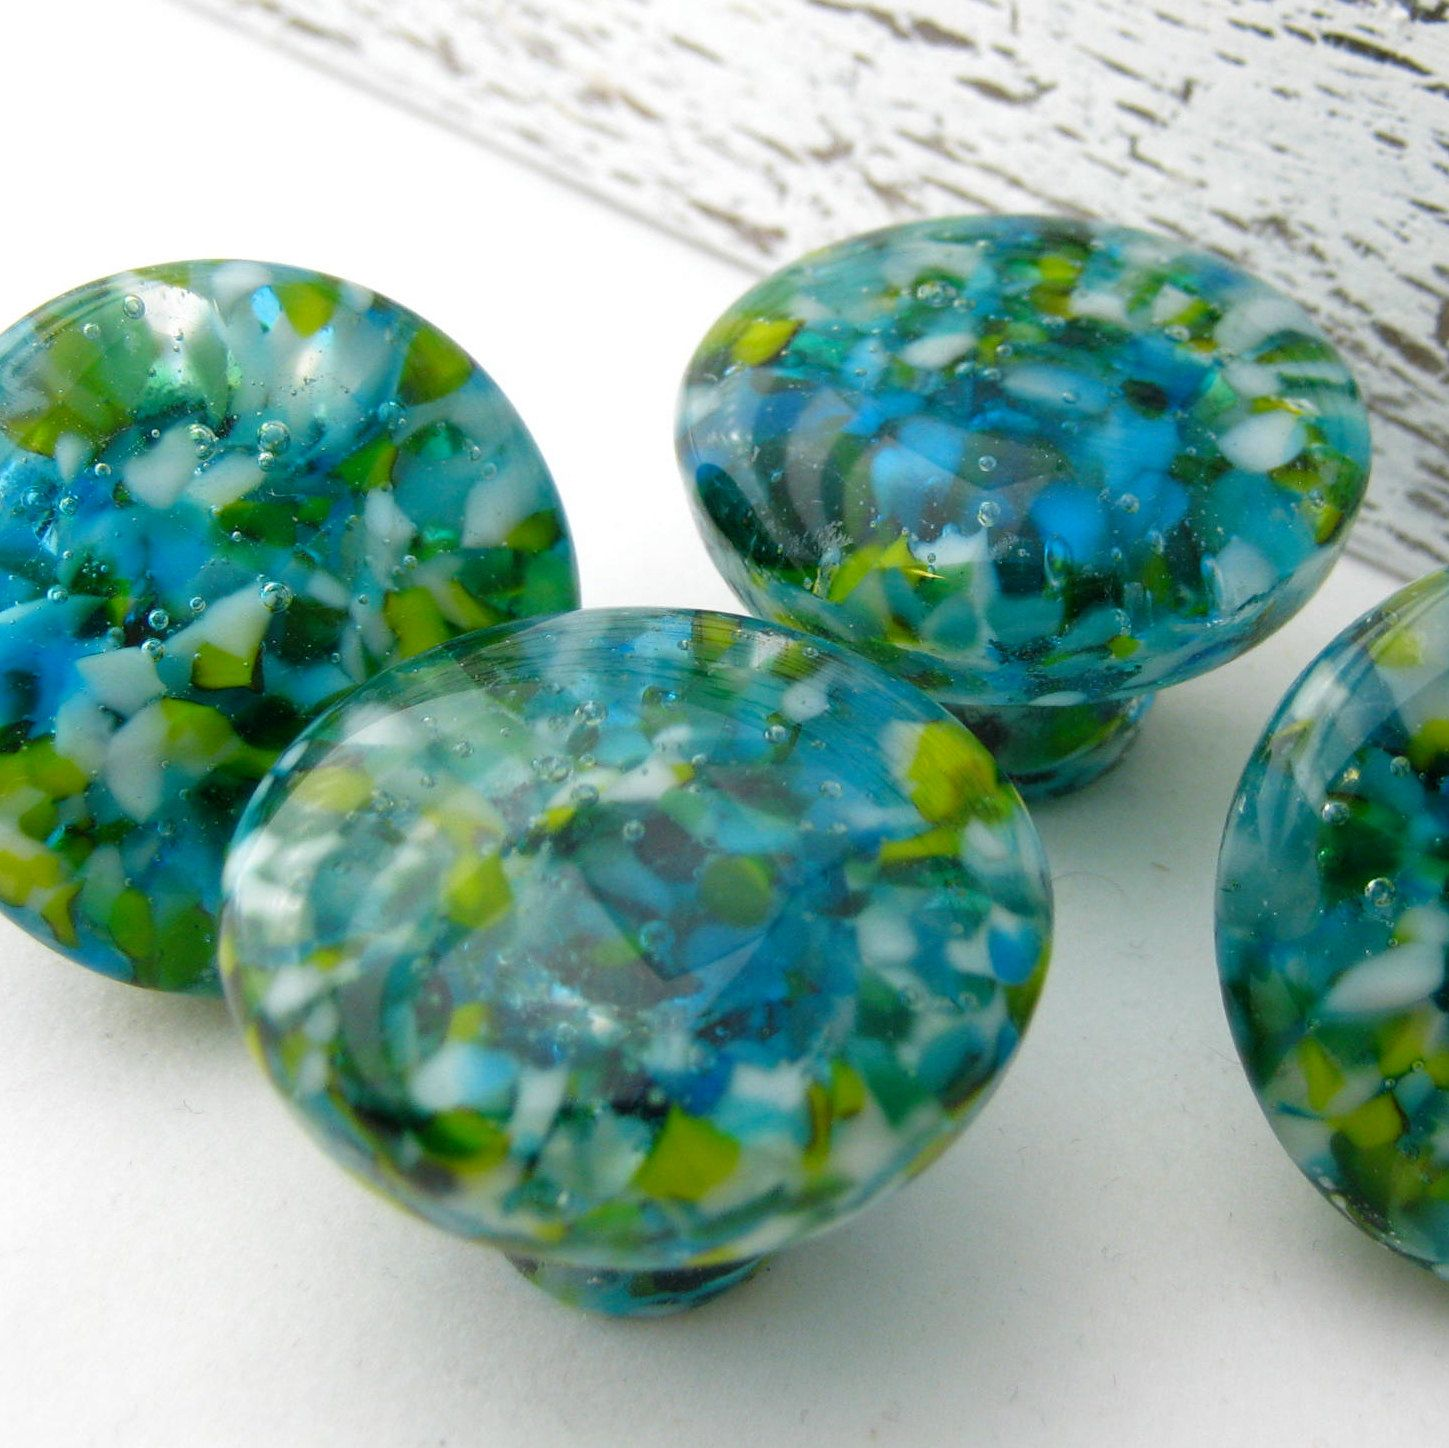 Leisure Lake Fused Glass Cabinet Hardware Was Created From A Bright Beach  Mix Of Transluscent Turquoise, White, Lemongrass, And Teal Suspended In